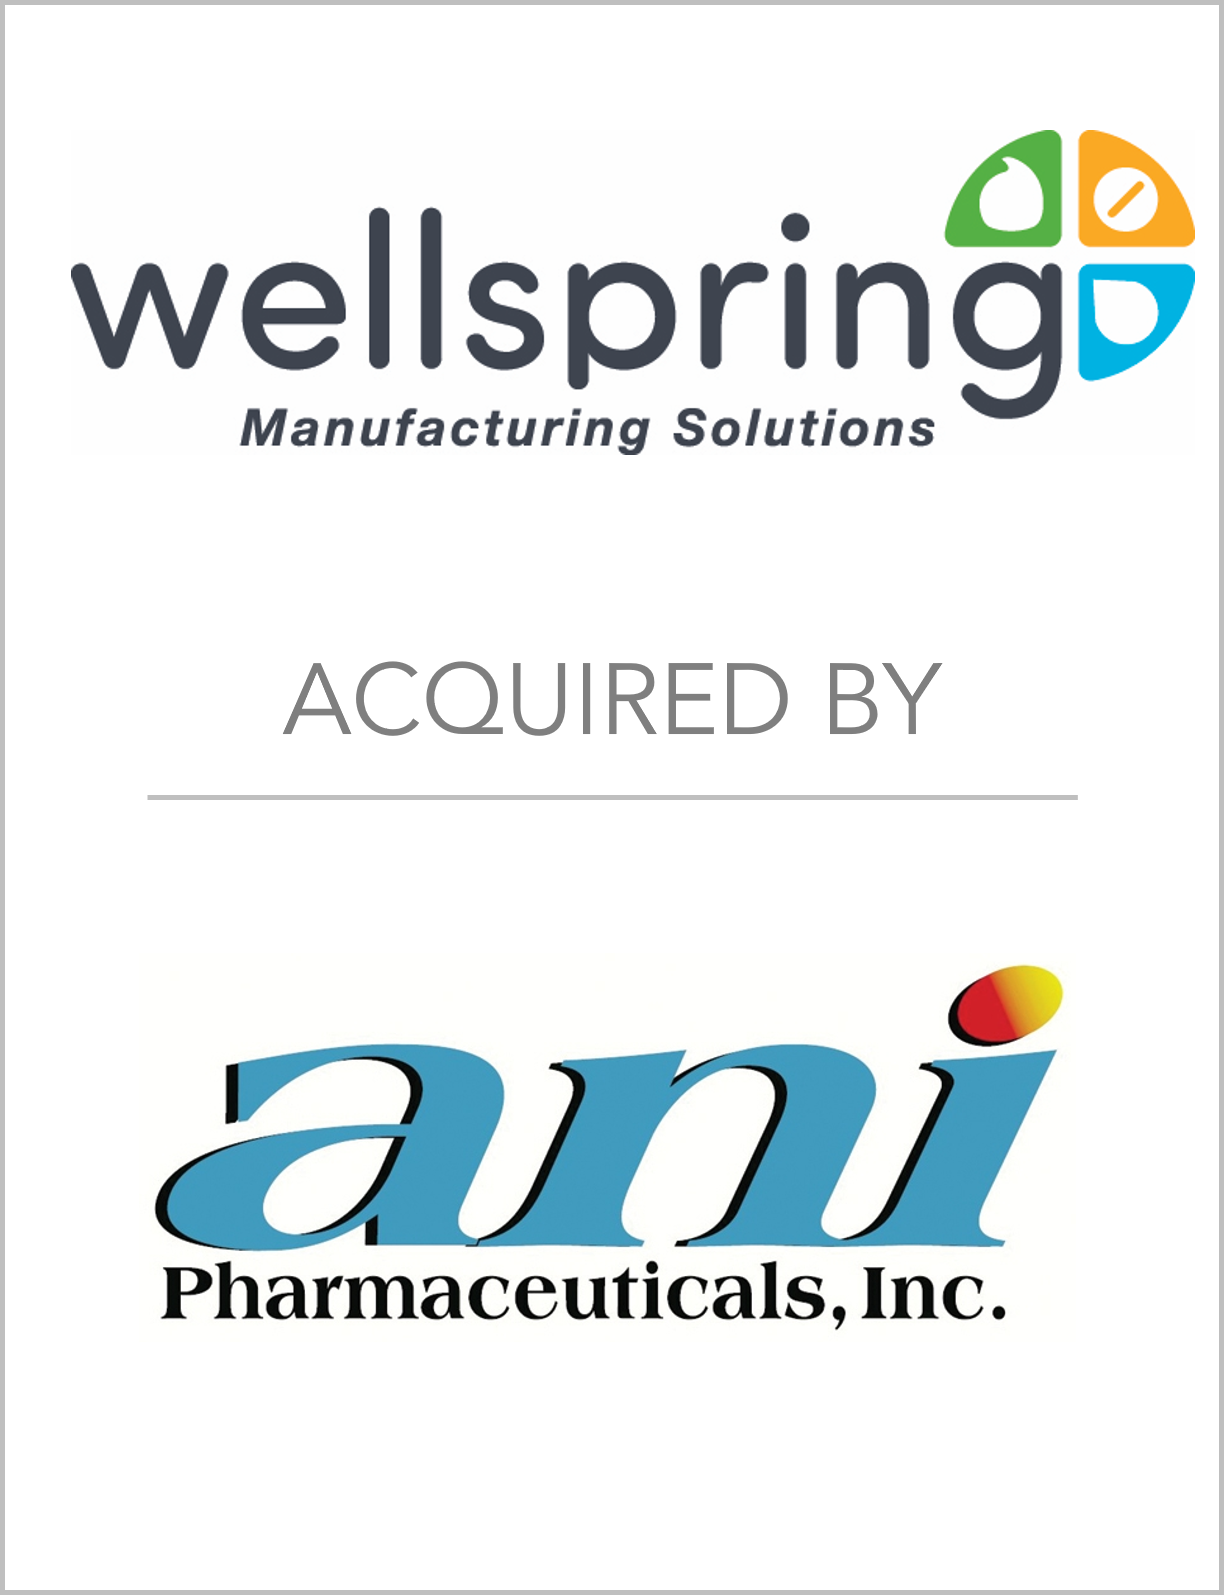 Fairmount Partners Represents Wellsp